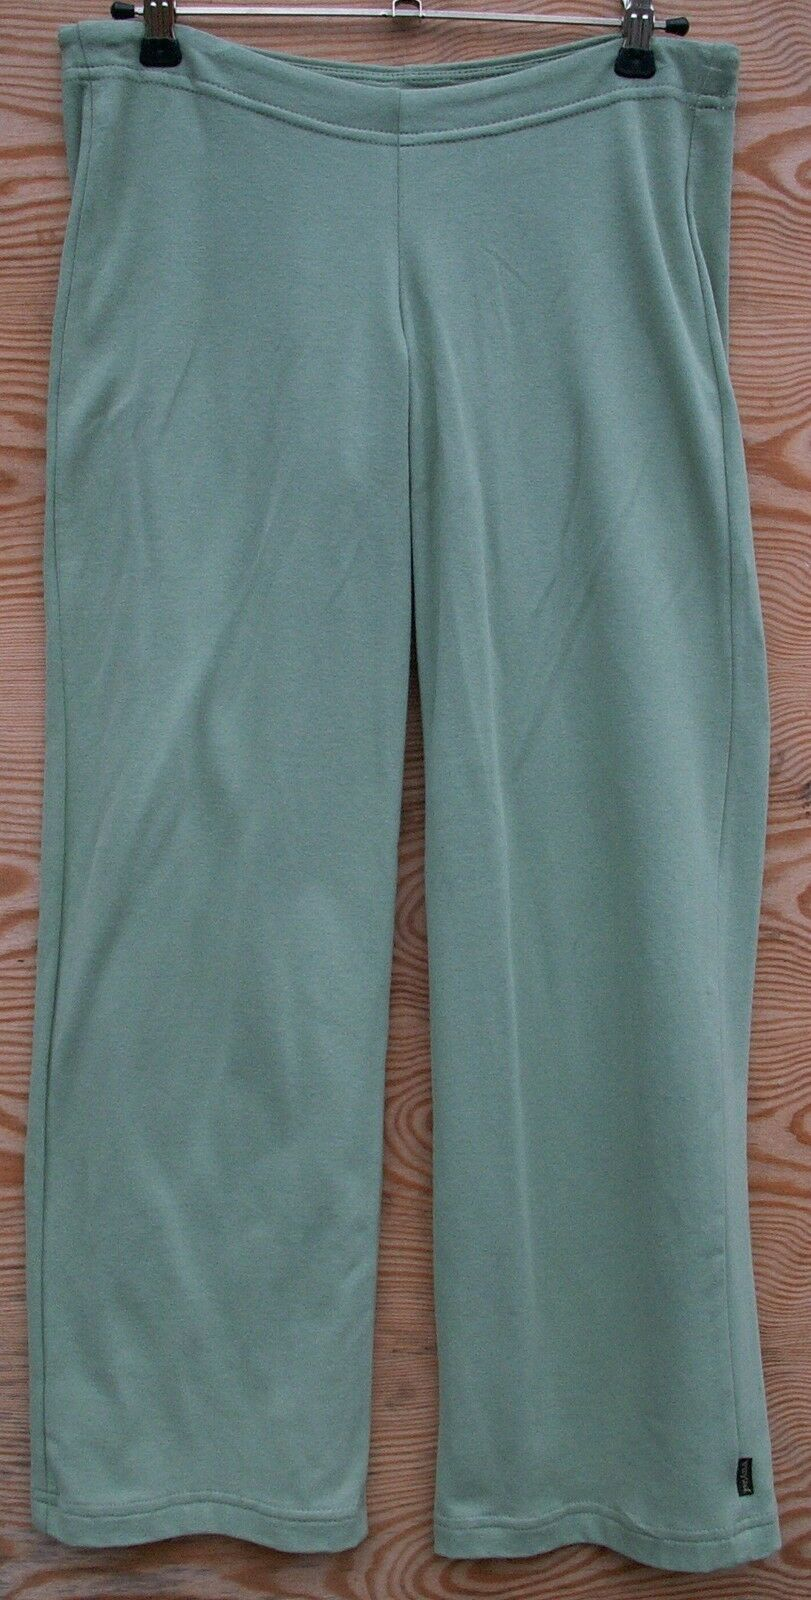 Prana Women's Prima Capri Pant, Size s, 3 4 - long Trousers for ladies